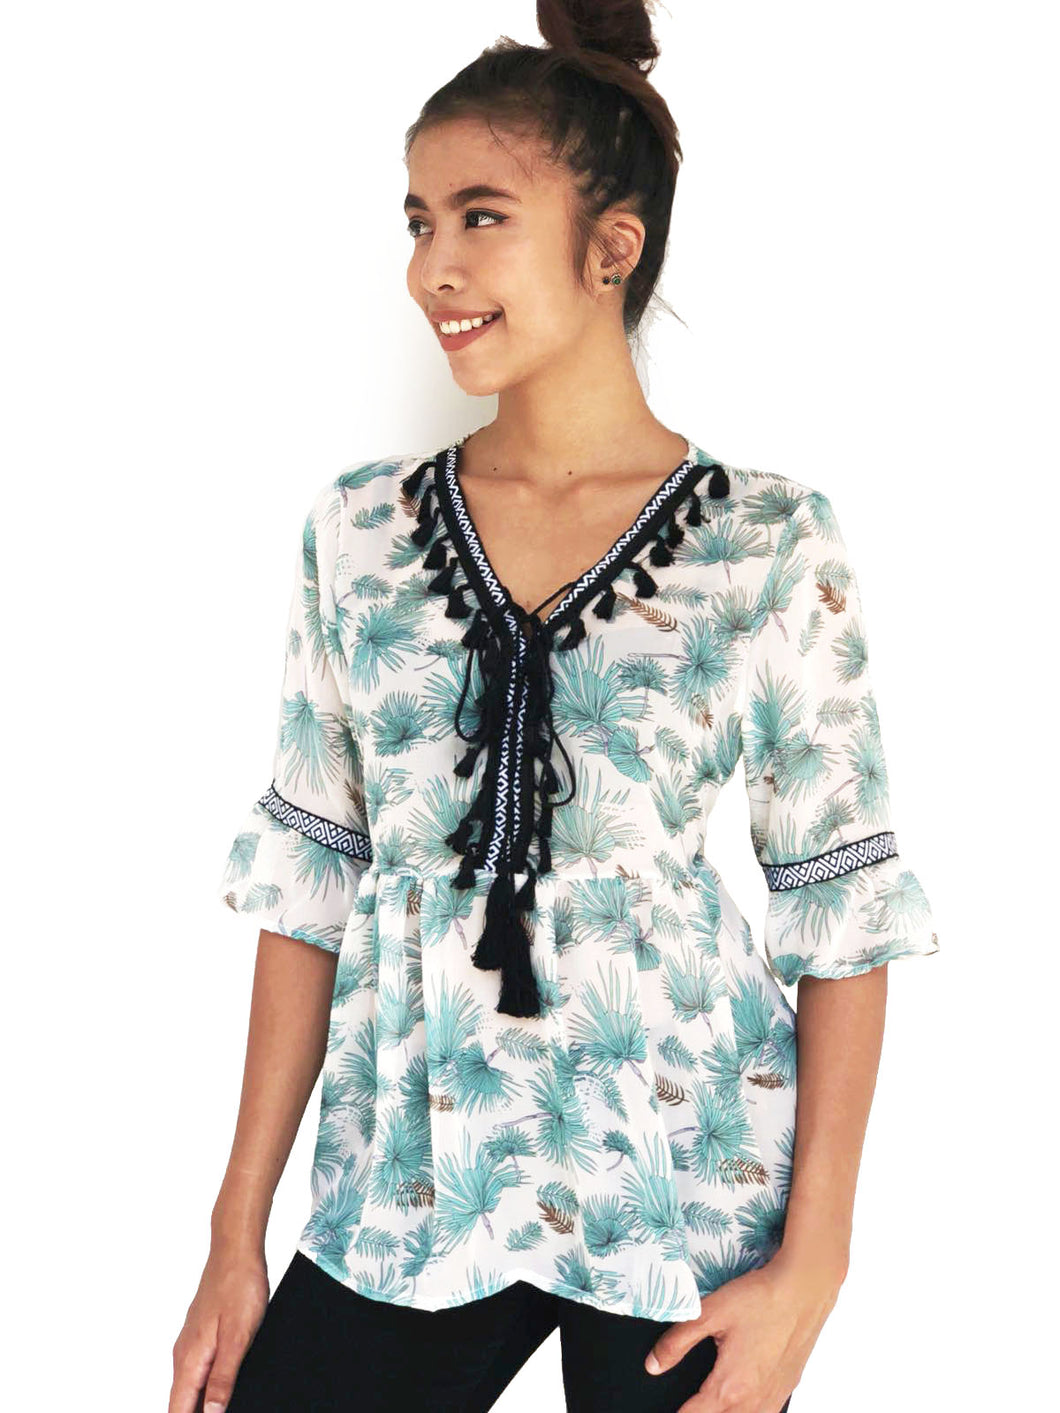 Tassel-Bordered Printed Blouse (Green Hawaiian)(BACKORDER)